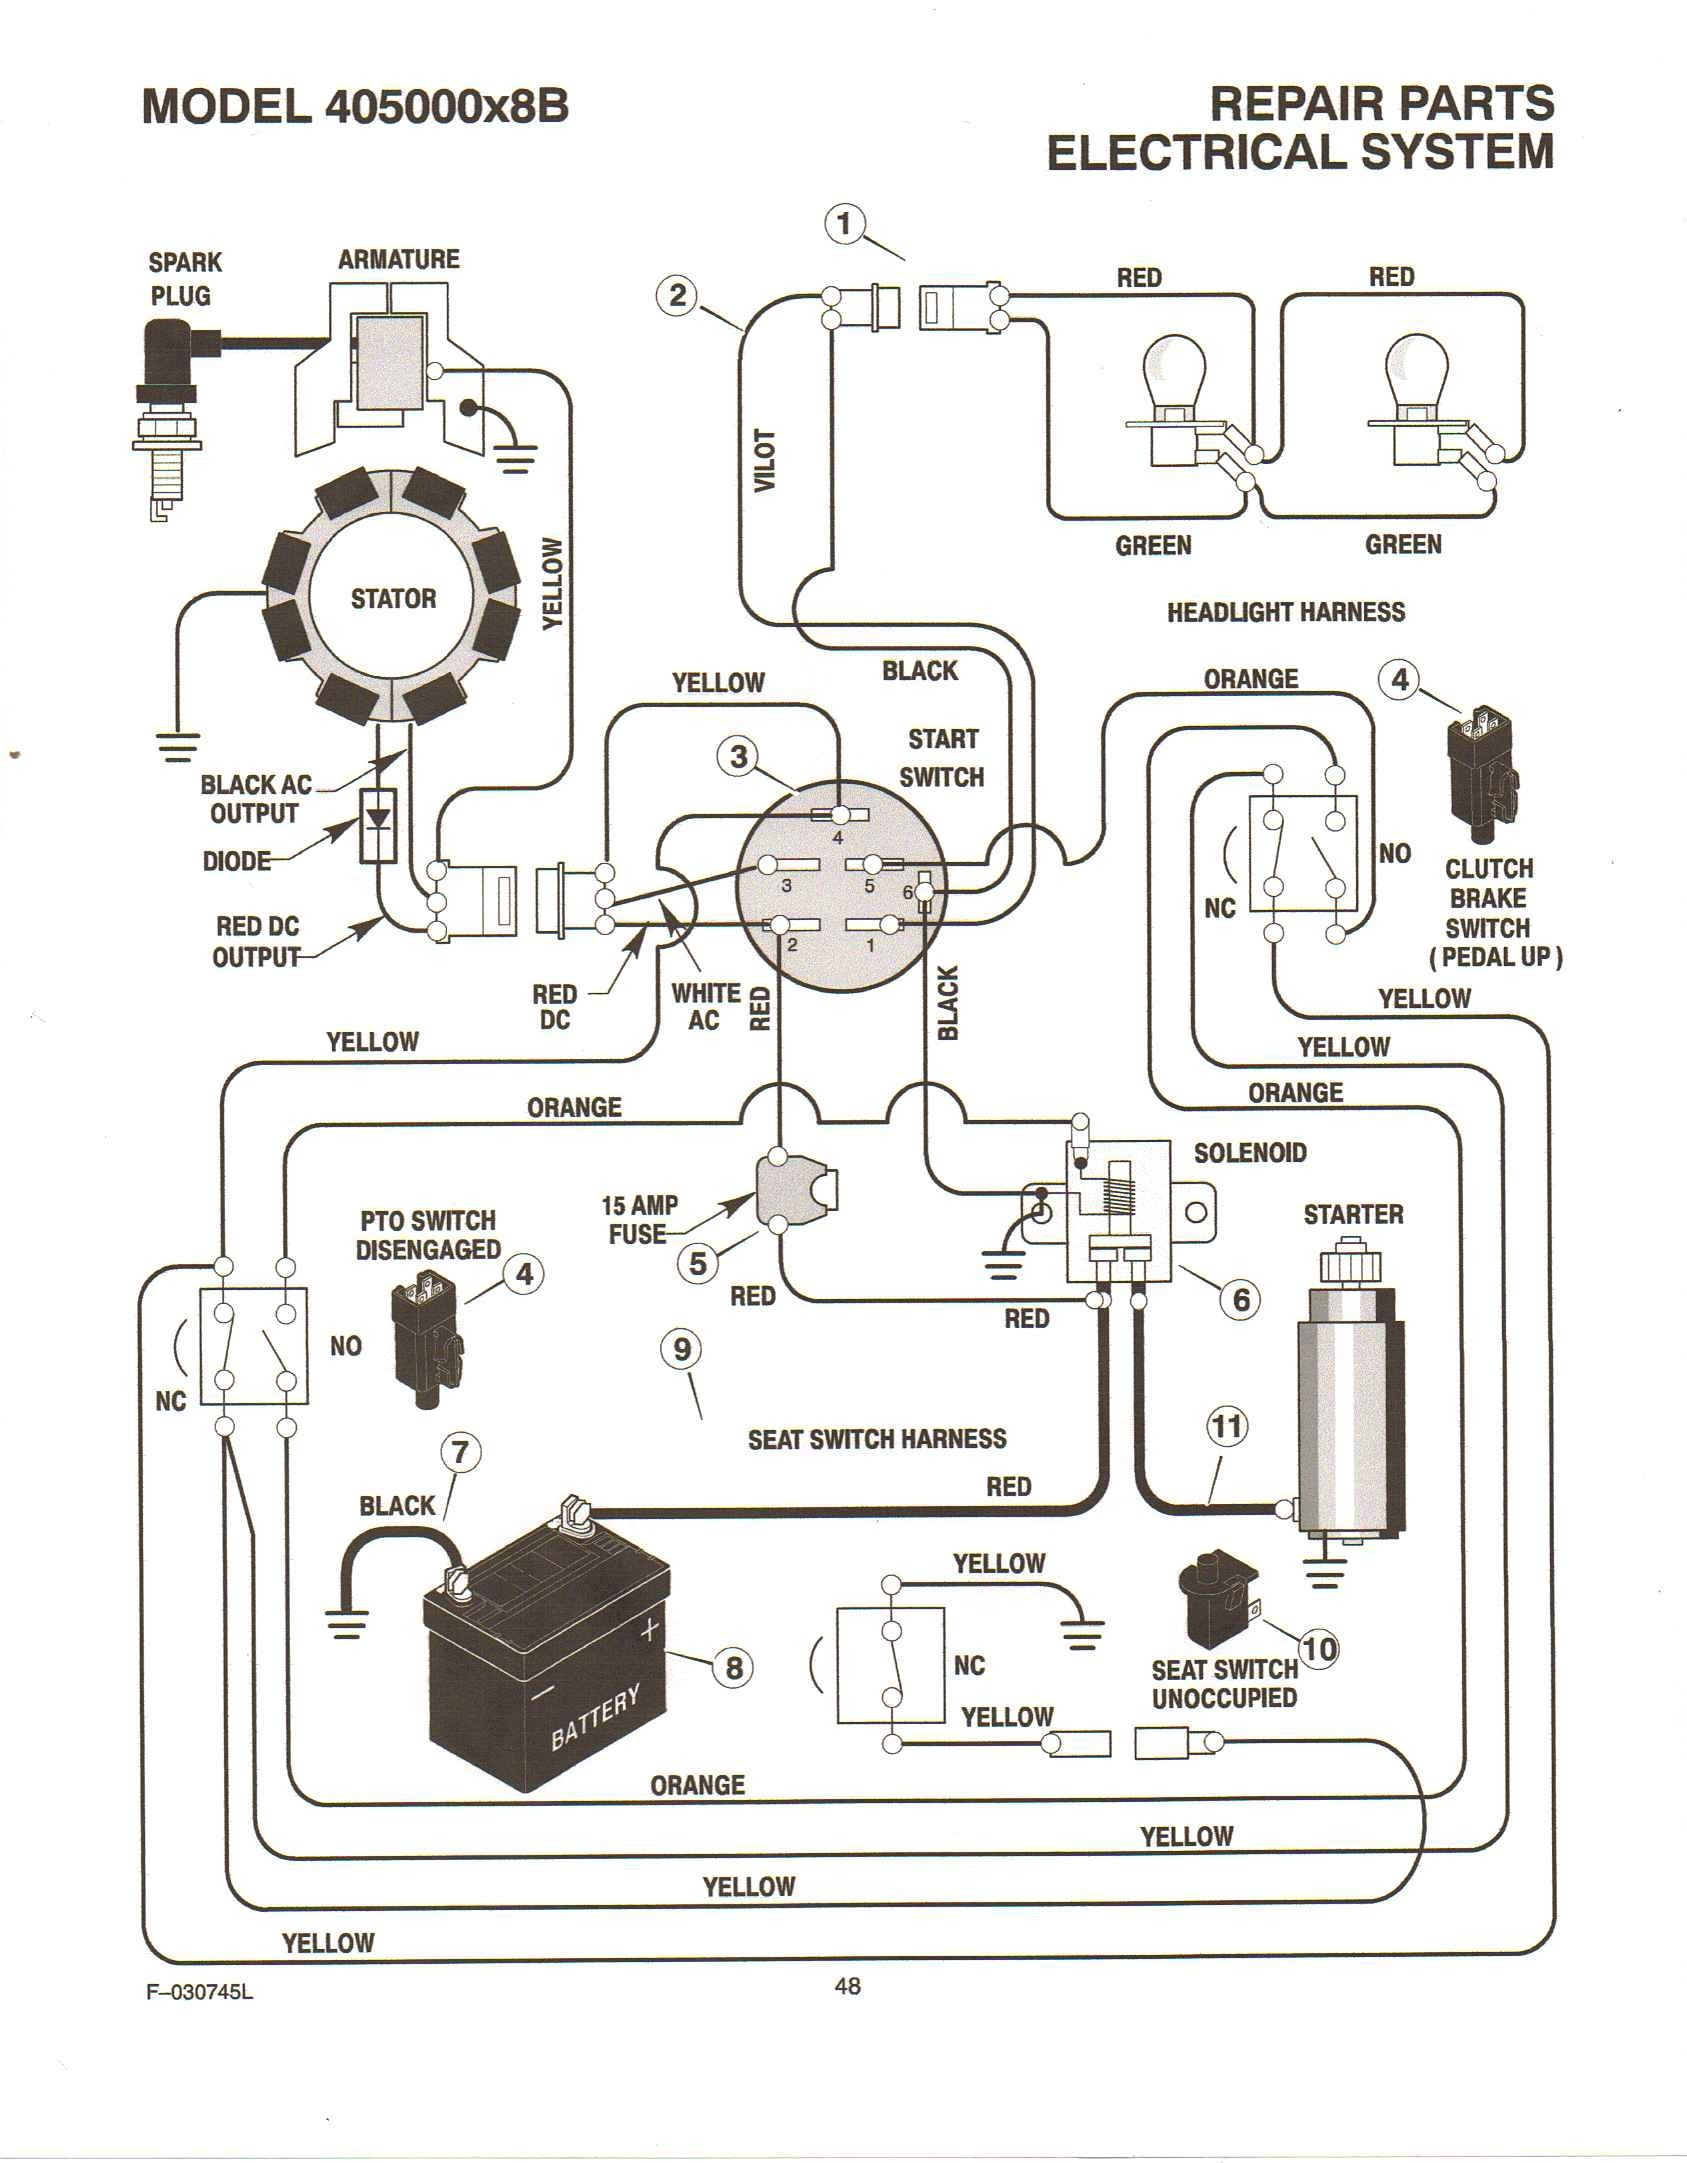 Wiring Diagram For Kohler Engine Briggs And Stratton Adorable 20 Hp